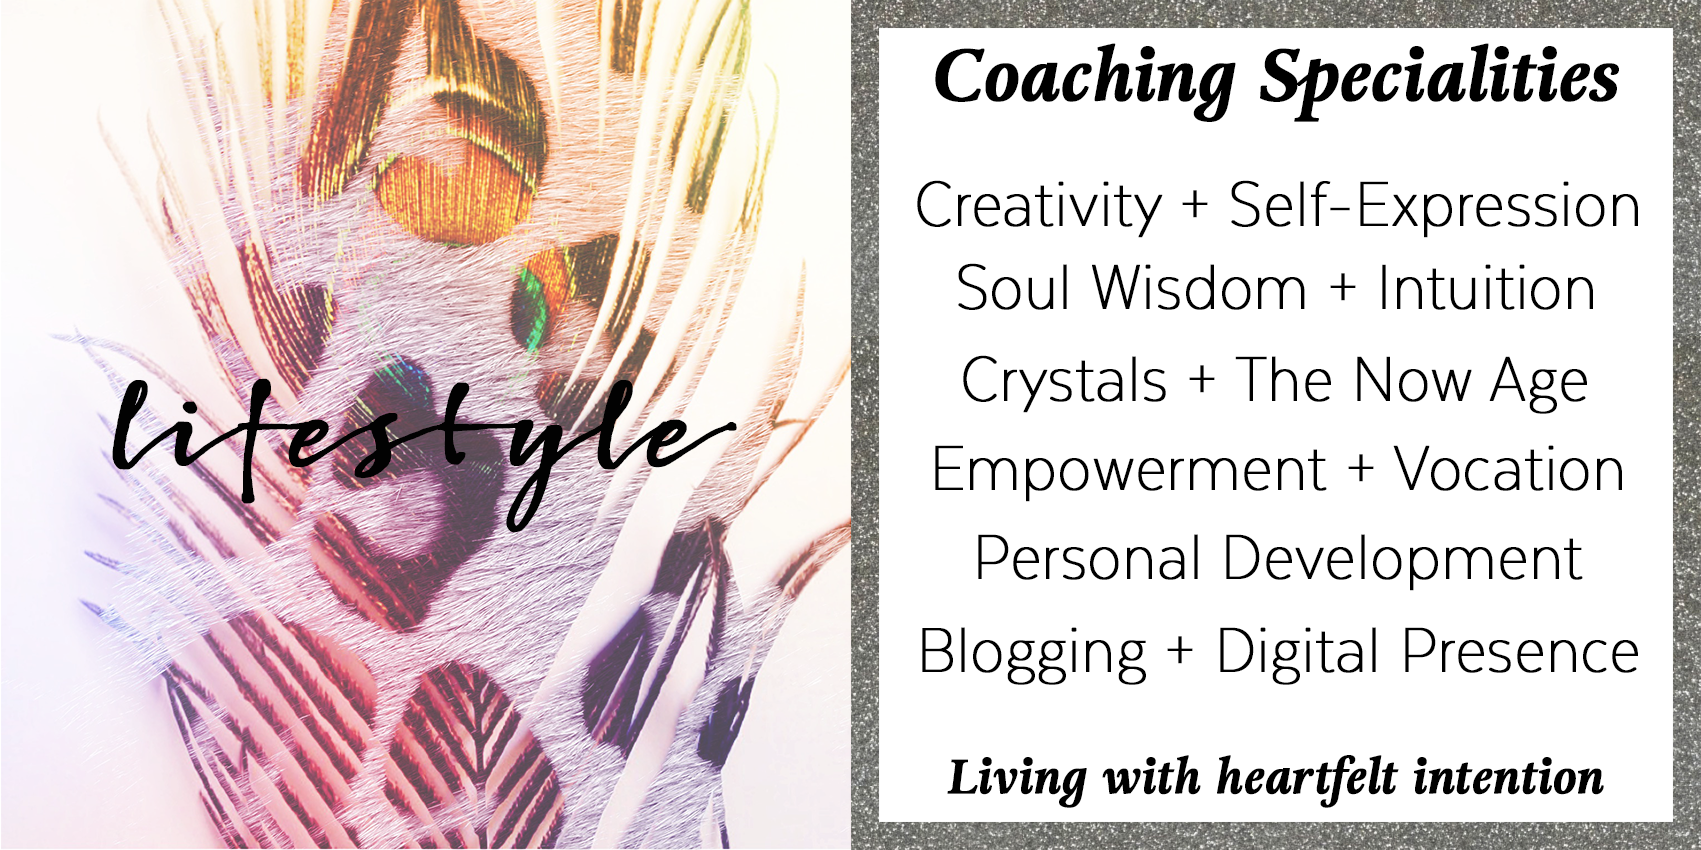 Lifestyle, life coaching specialties